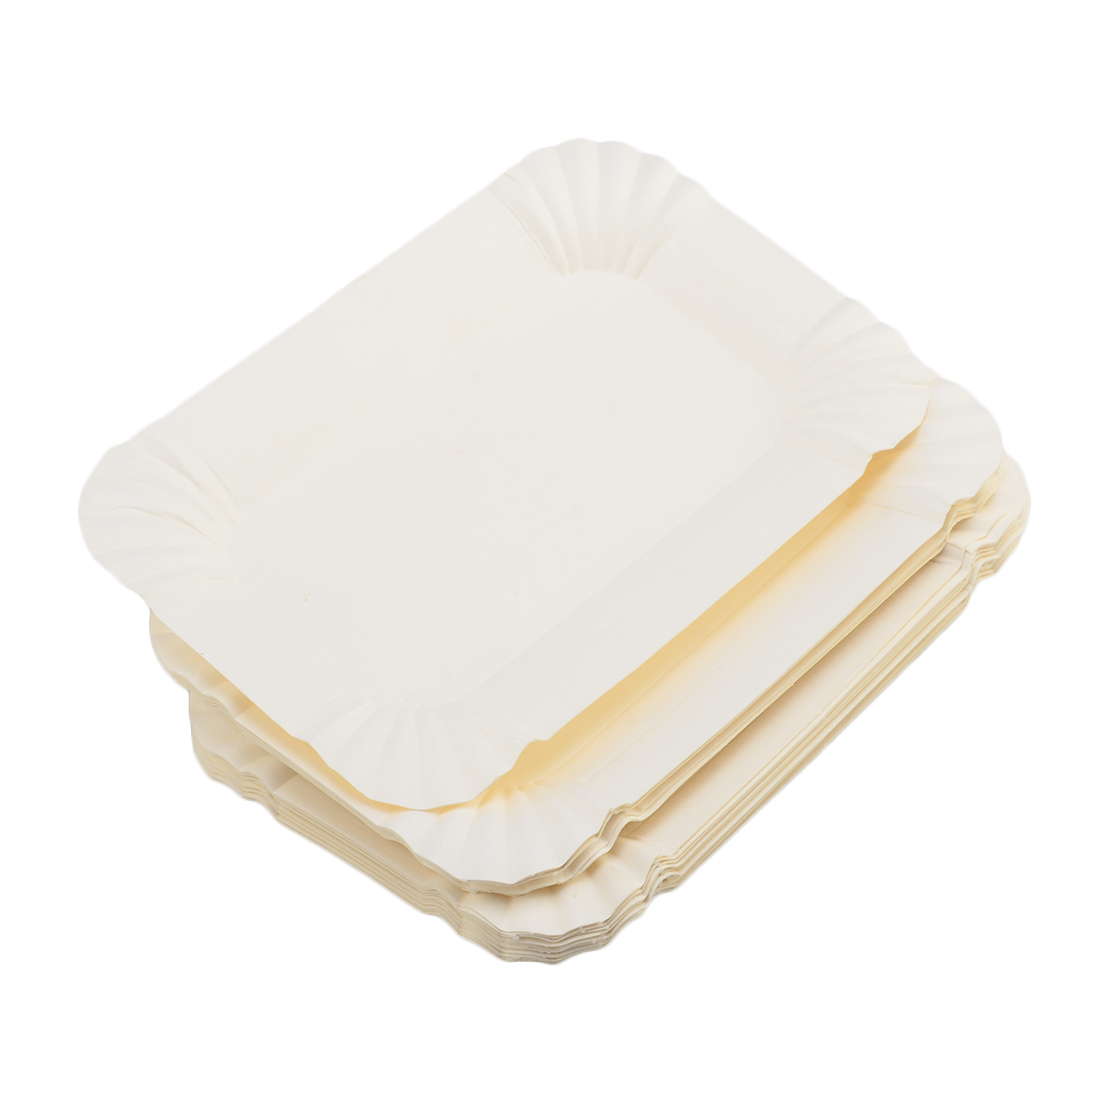 aeProduct.getSubject()  sc 1 st  AliExpress.com & Hot selling 20Pcs Disposable paper plates Rectangular Dinnerware ...